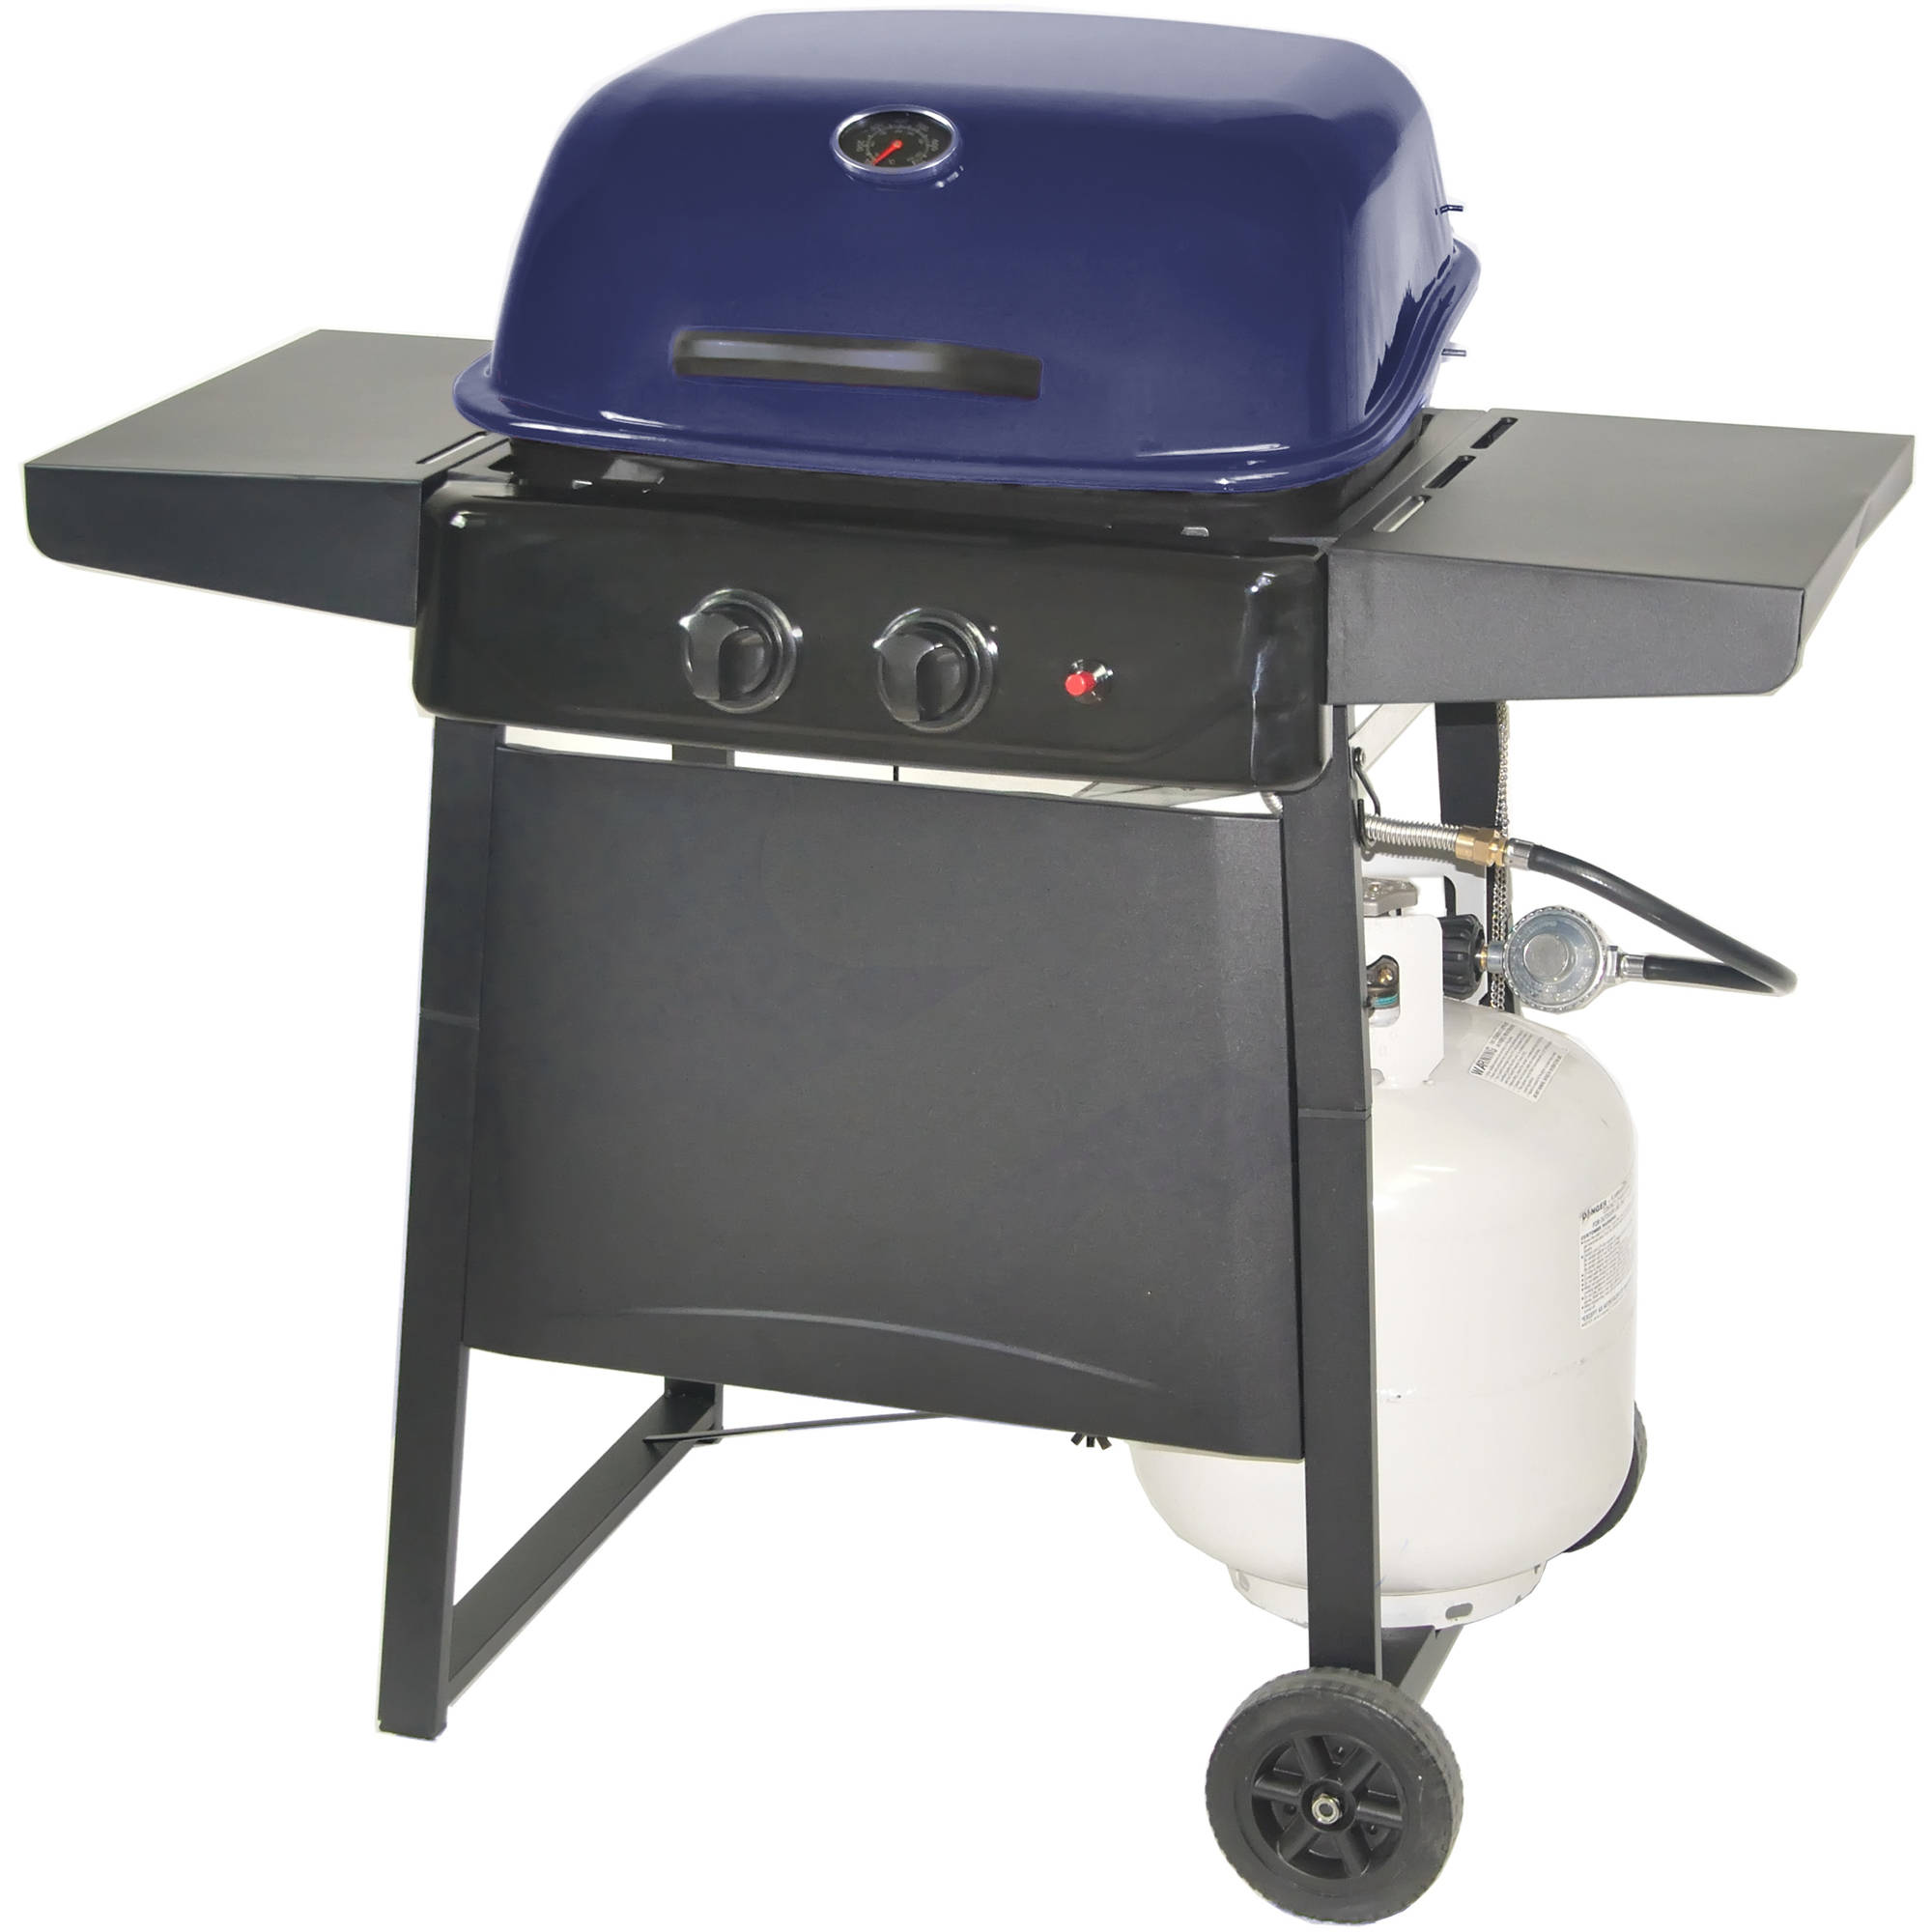 RevoAce 2-Burner LP Gas Grill, Deep Cobalt Blue